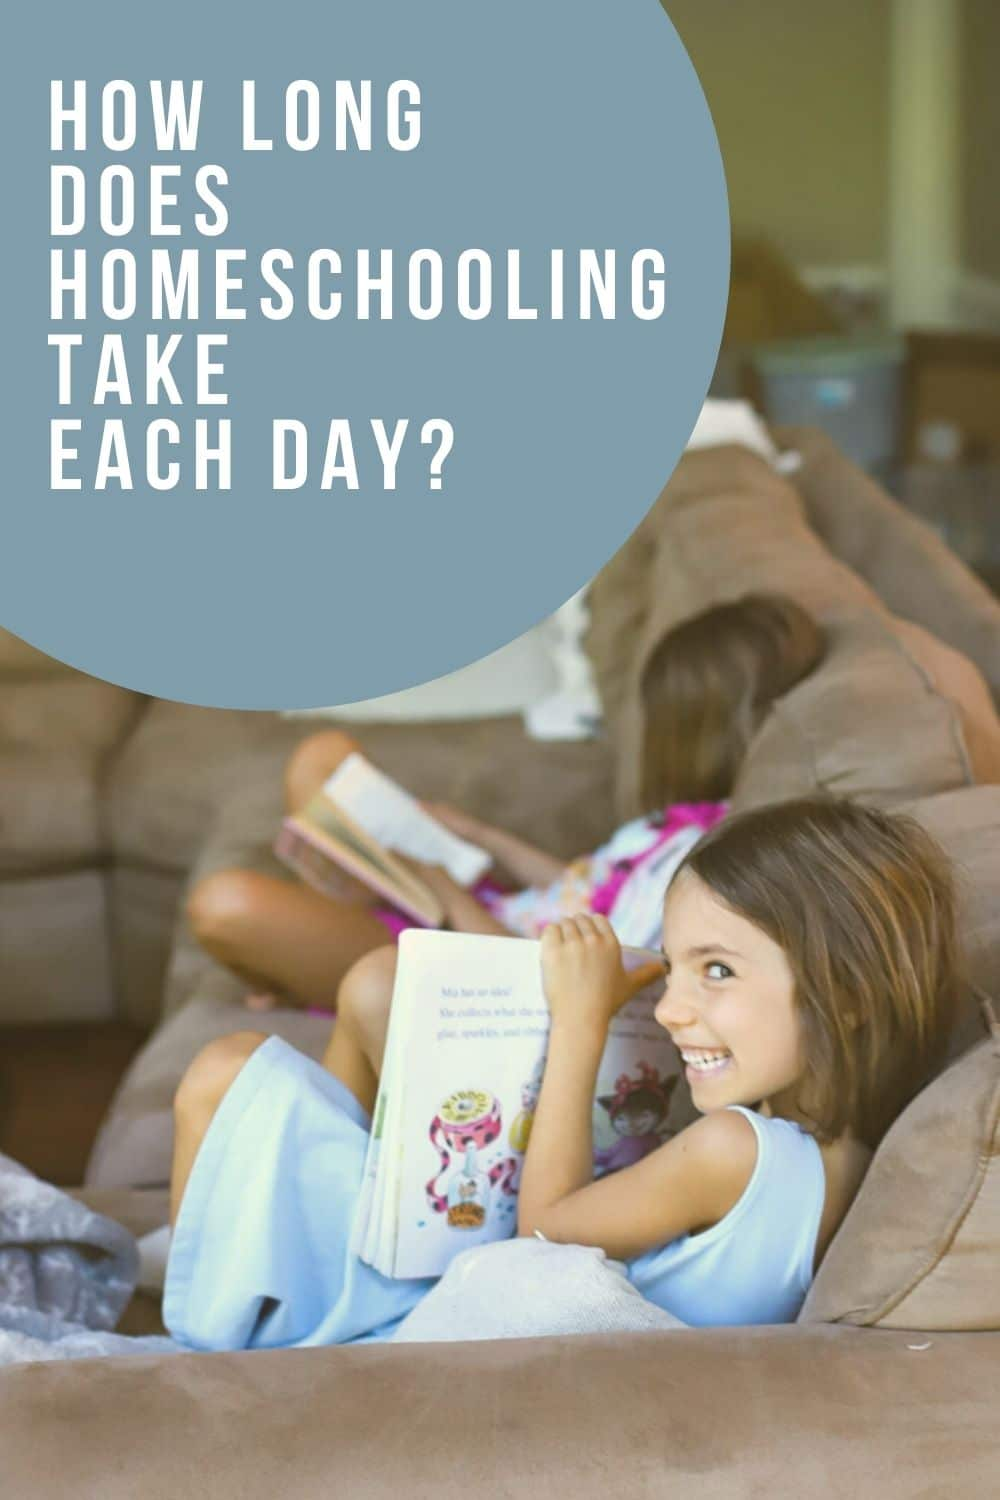 how long does homeschooling take each day